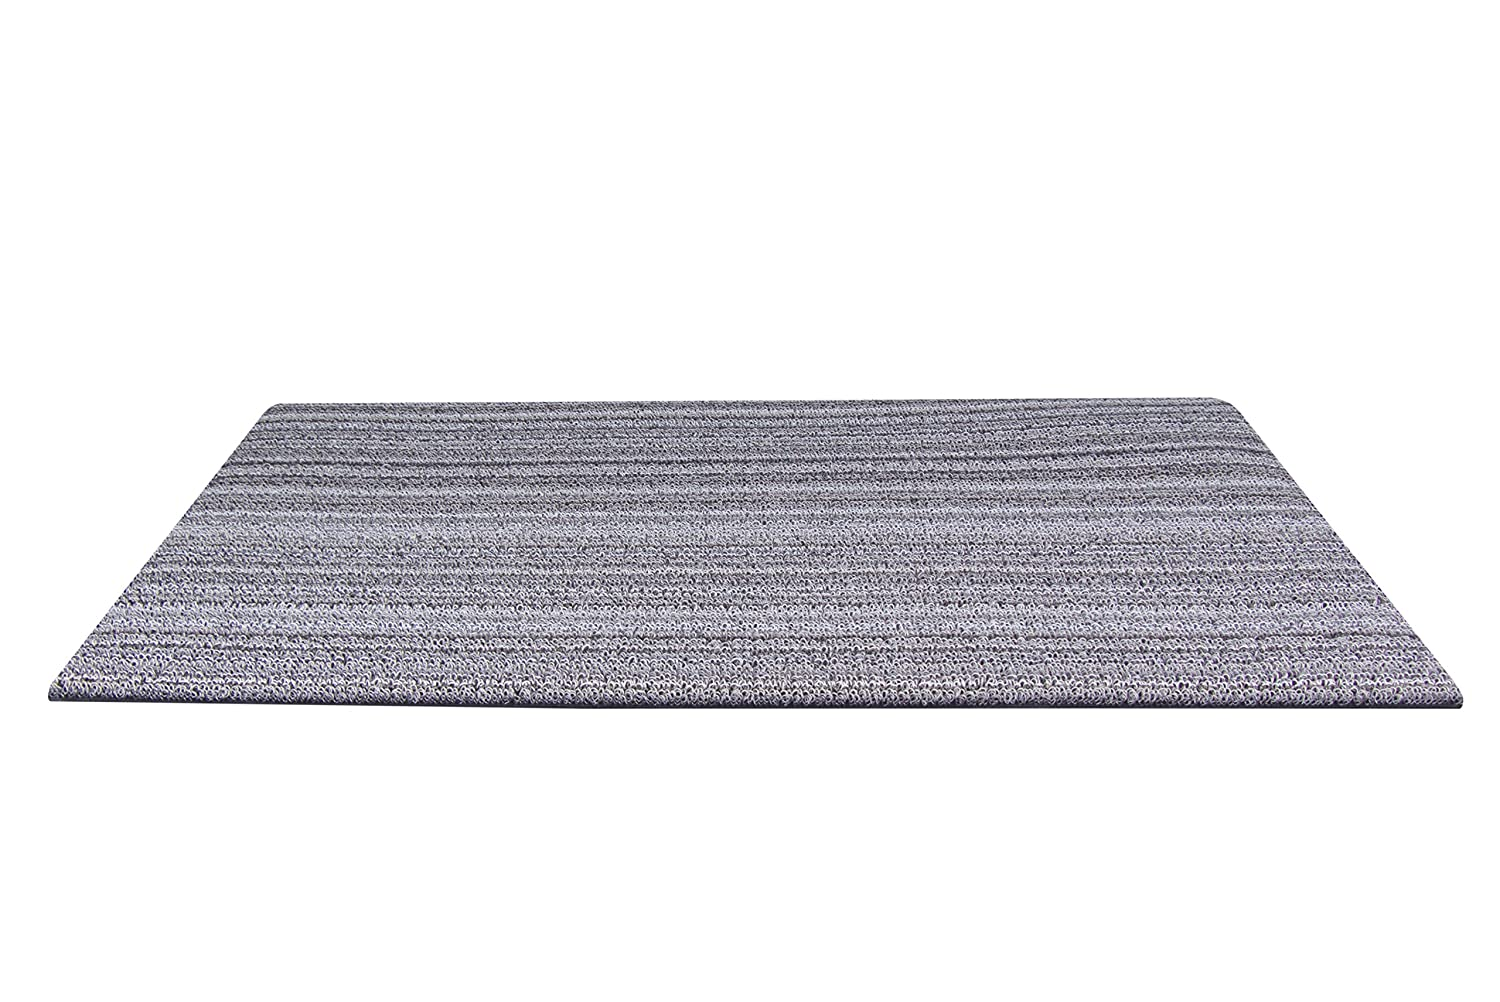 survivor mat outdoor utility black backed indoor area vinyl ideas htm rug beautiful ribbed design x inch decoration mats twin